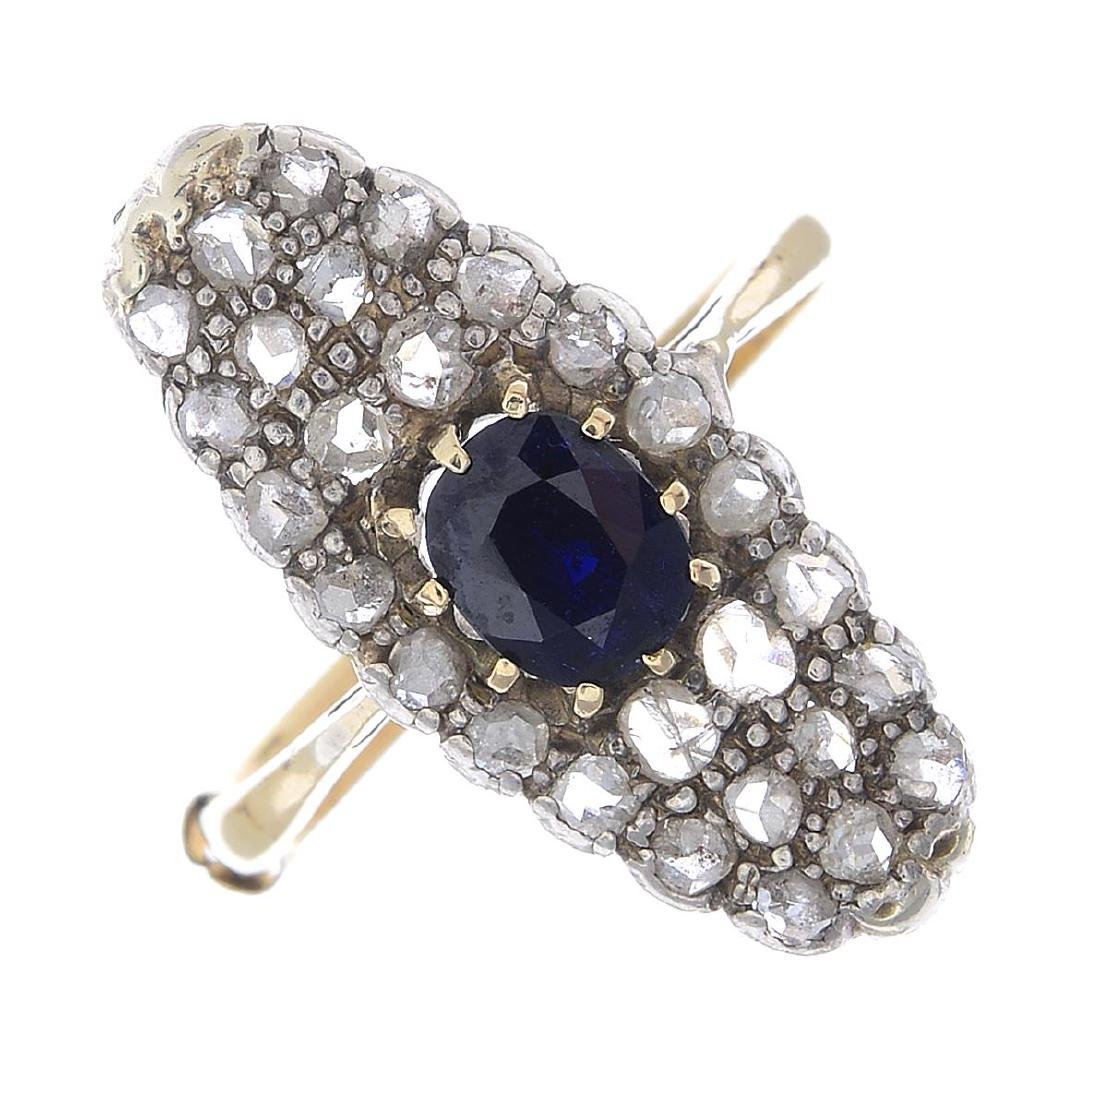 (22176) A diamond and sapphire dress ring. The